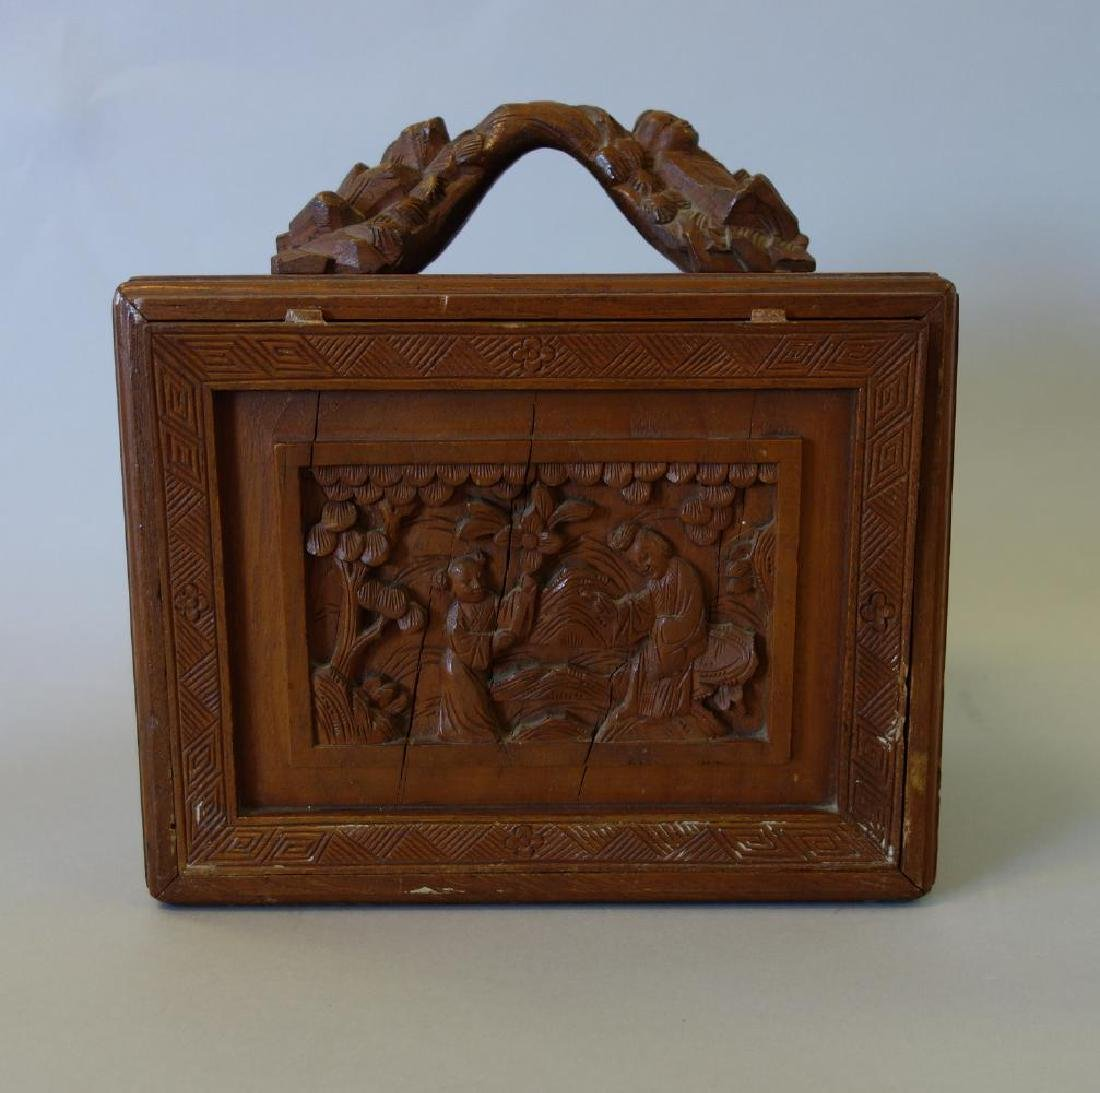 Chinese Mahjong Set in Carved Wood Case - 5